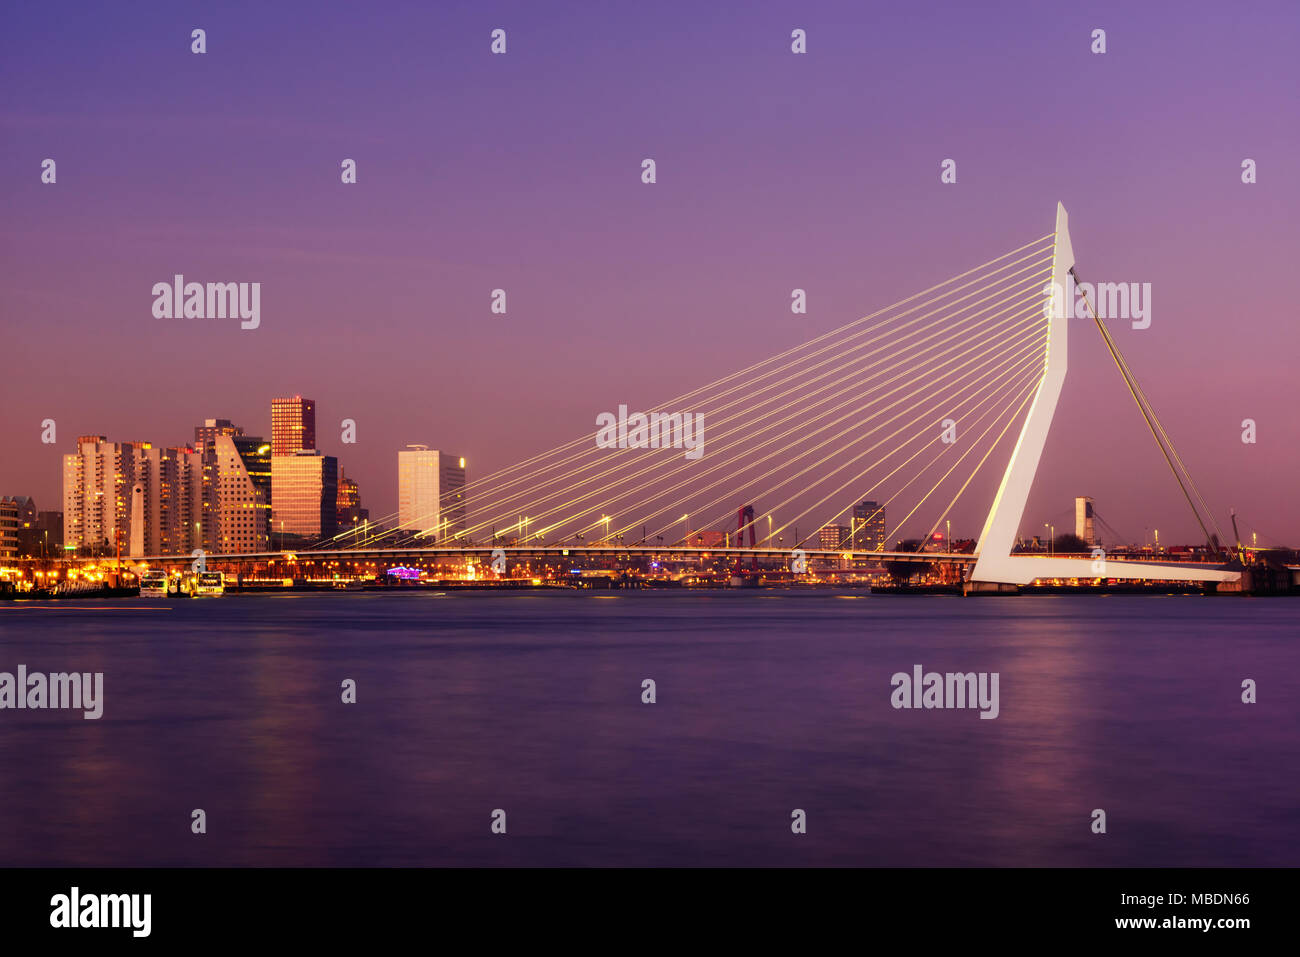 Amazing sunset view of Erasmus bridge and several skyscrapers in Rotterdam, Holland. Fascinating modern architecture. - Stock Image